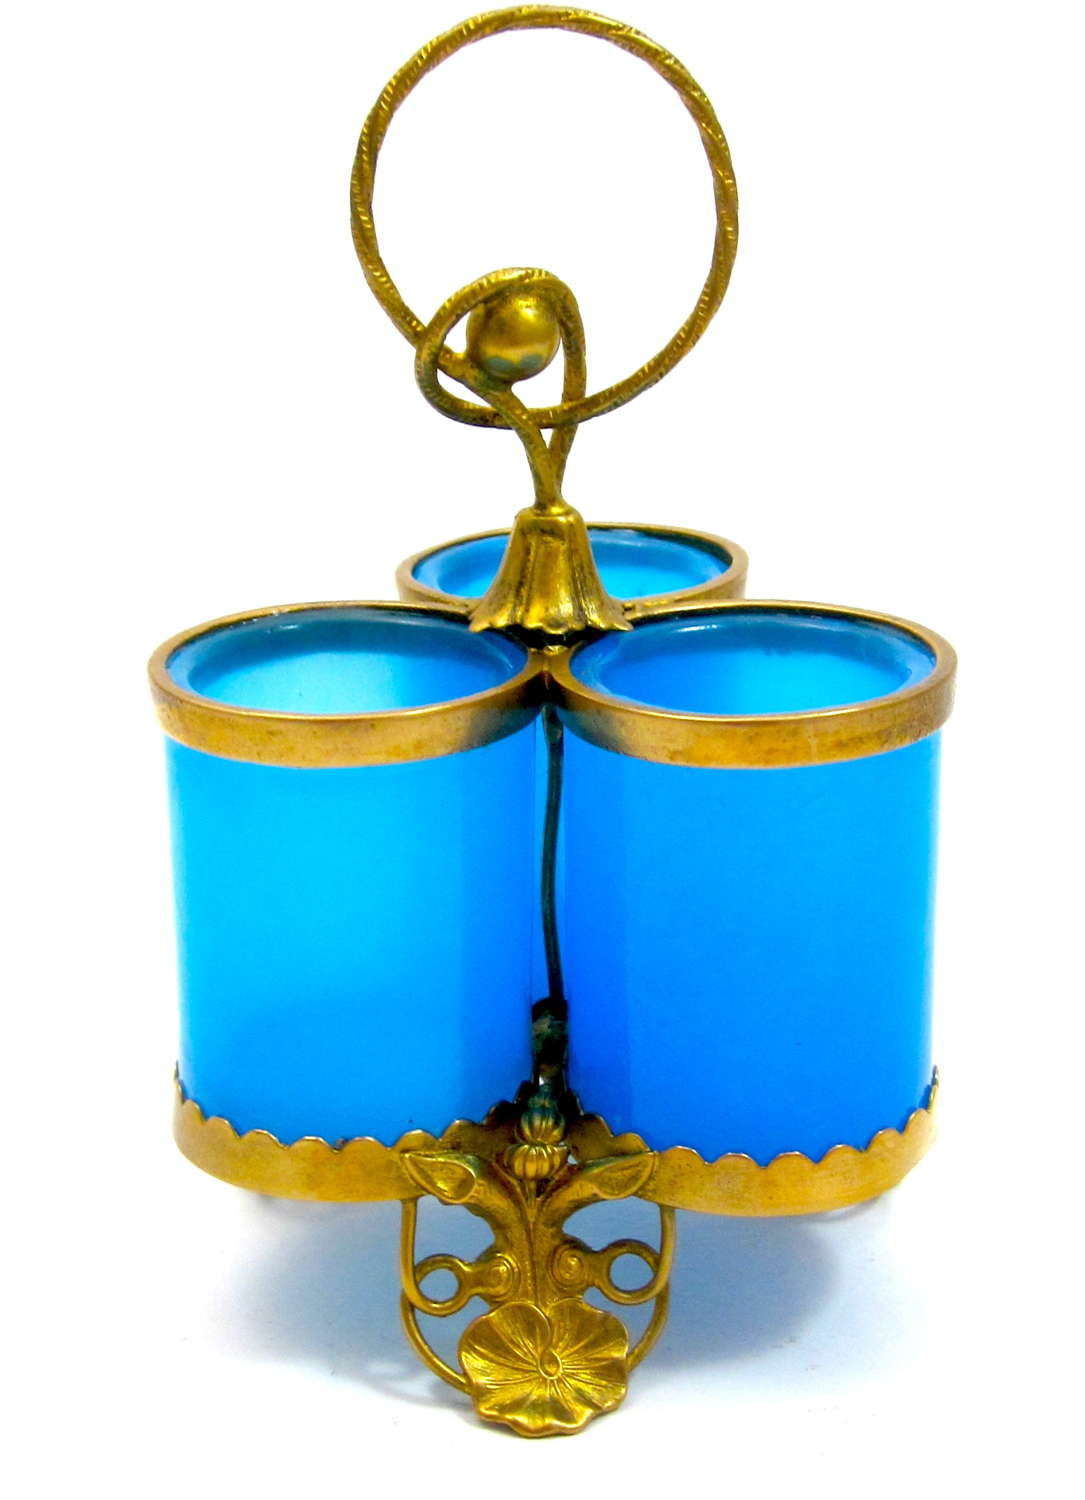 Antique French Palais Royal Blue Opaline Glass Pot with Lily Pads